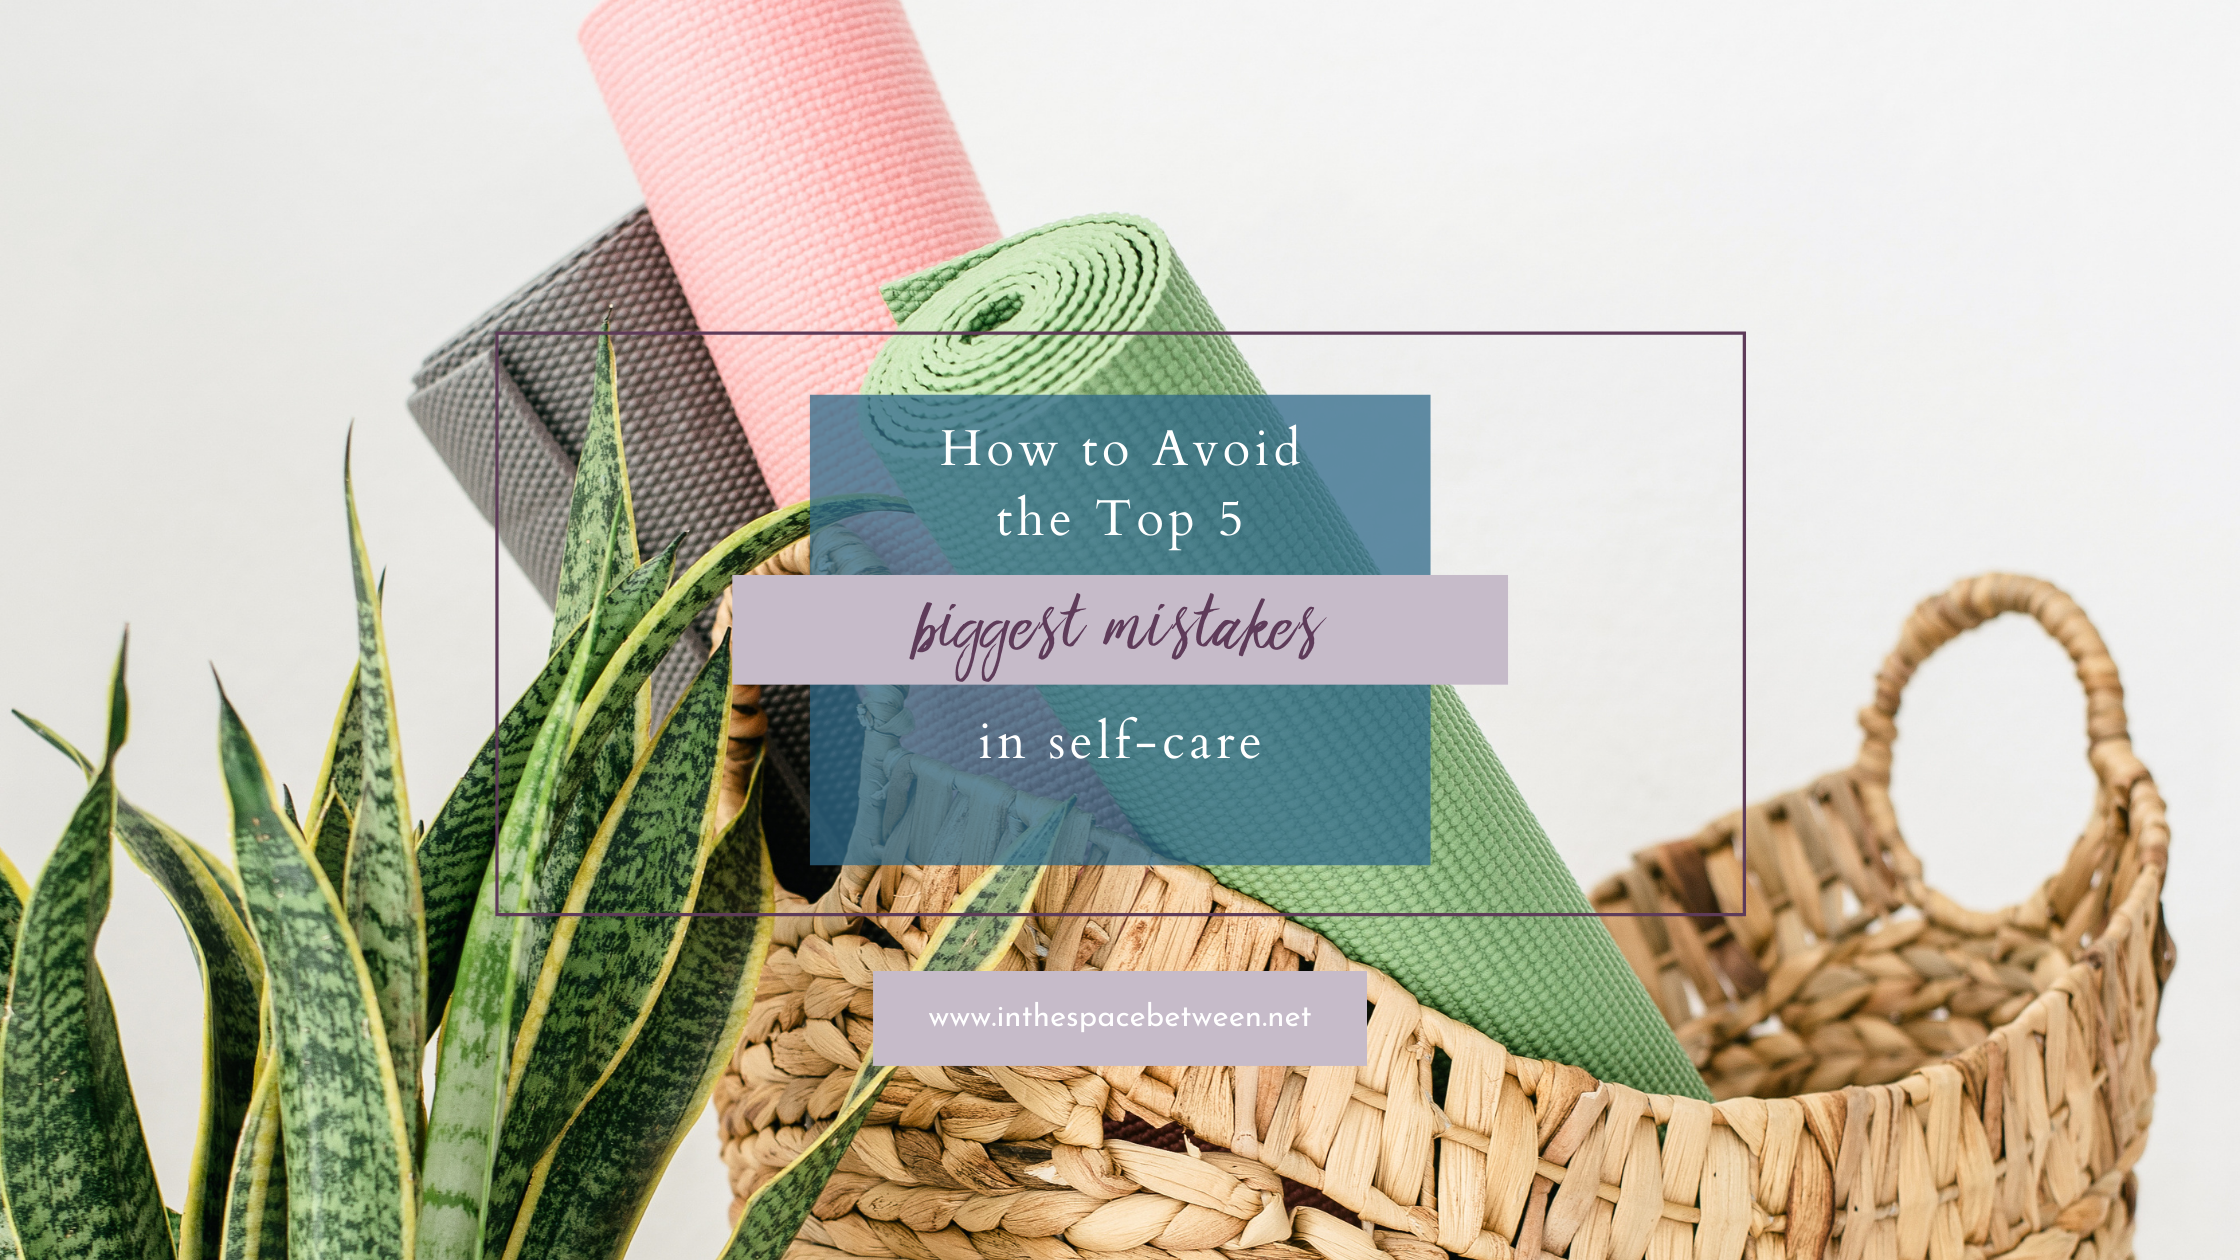 Avoid the 5 Biggest Mistakes in Self-Care